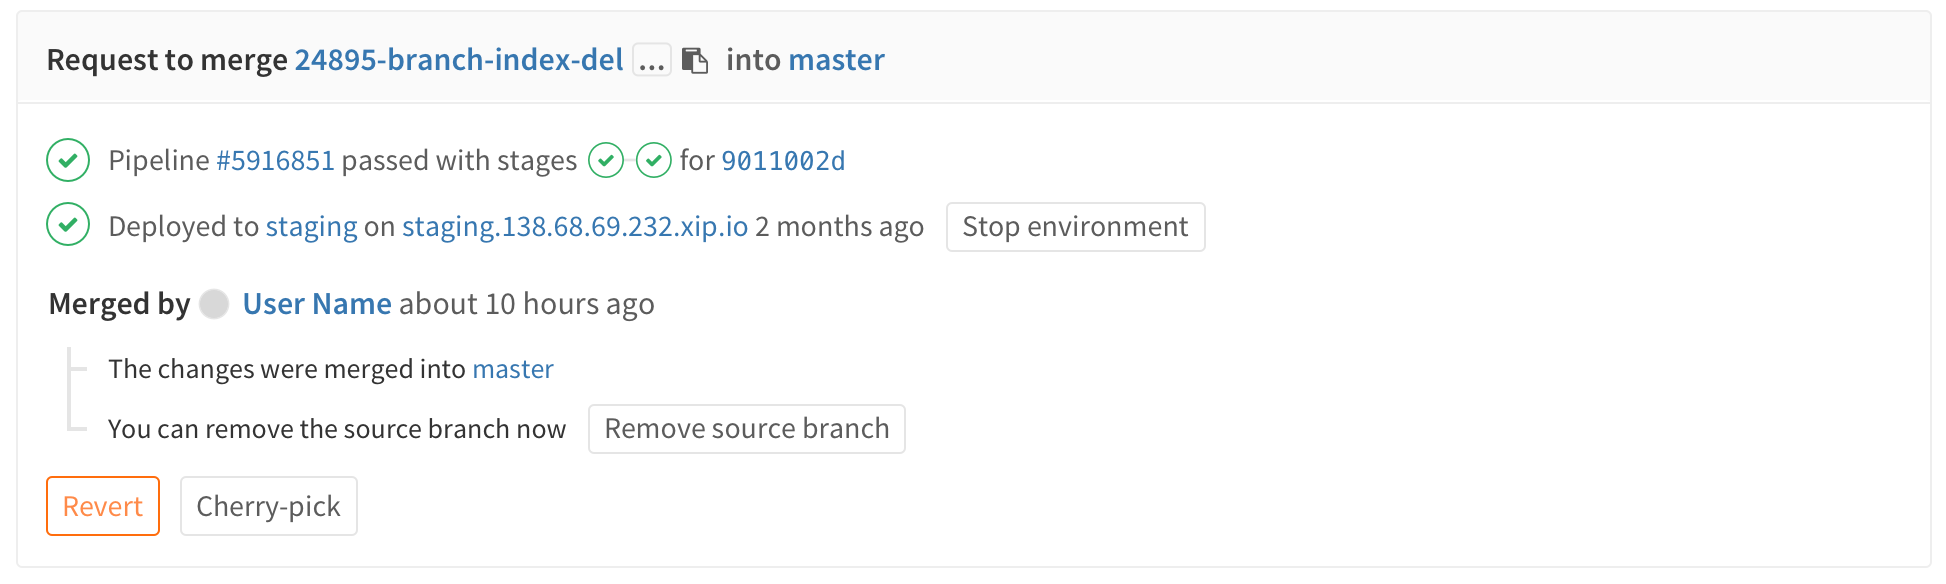 MR-merged-source-branch-to-remove